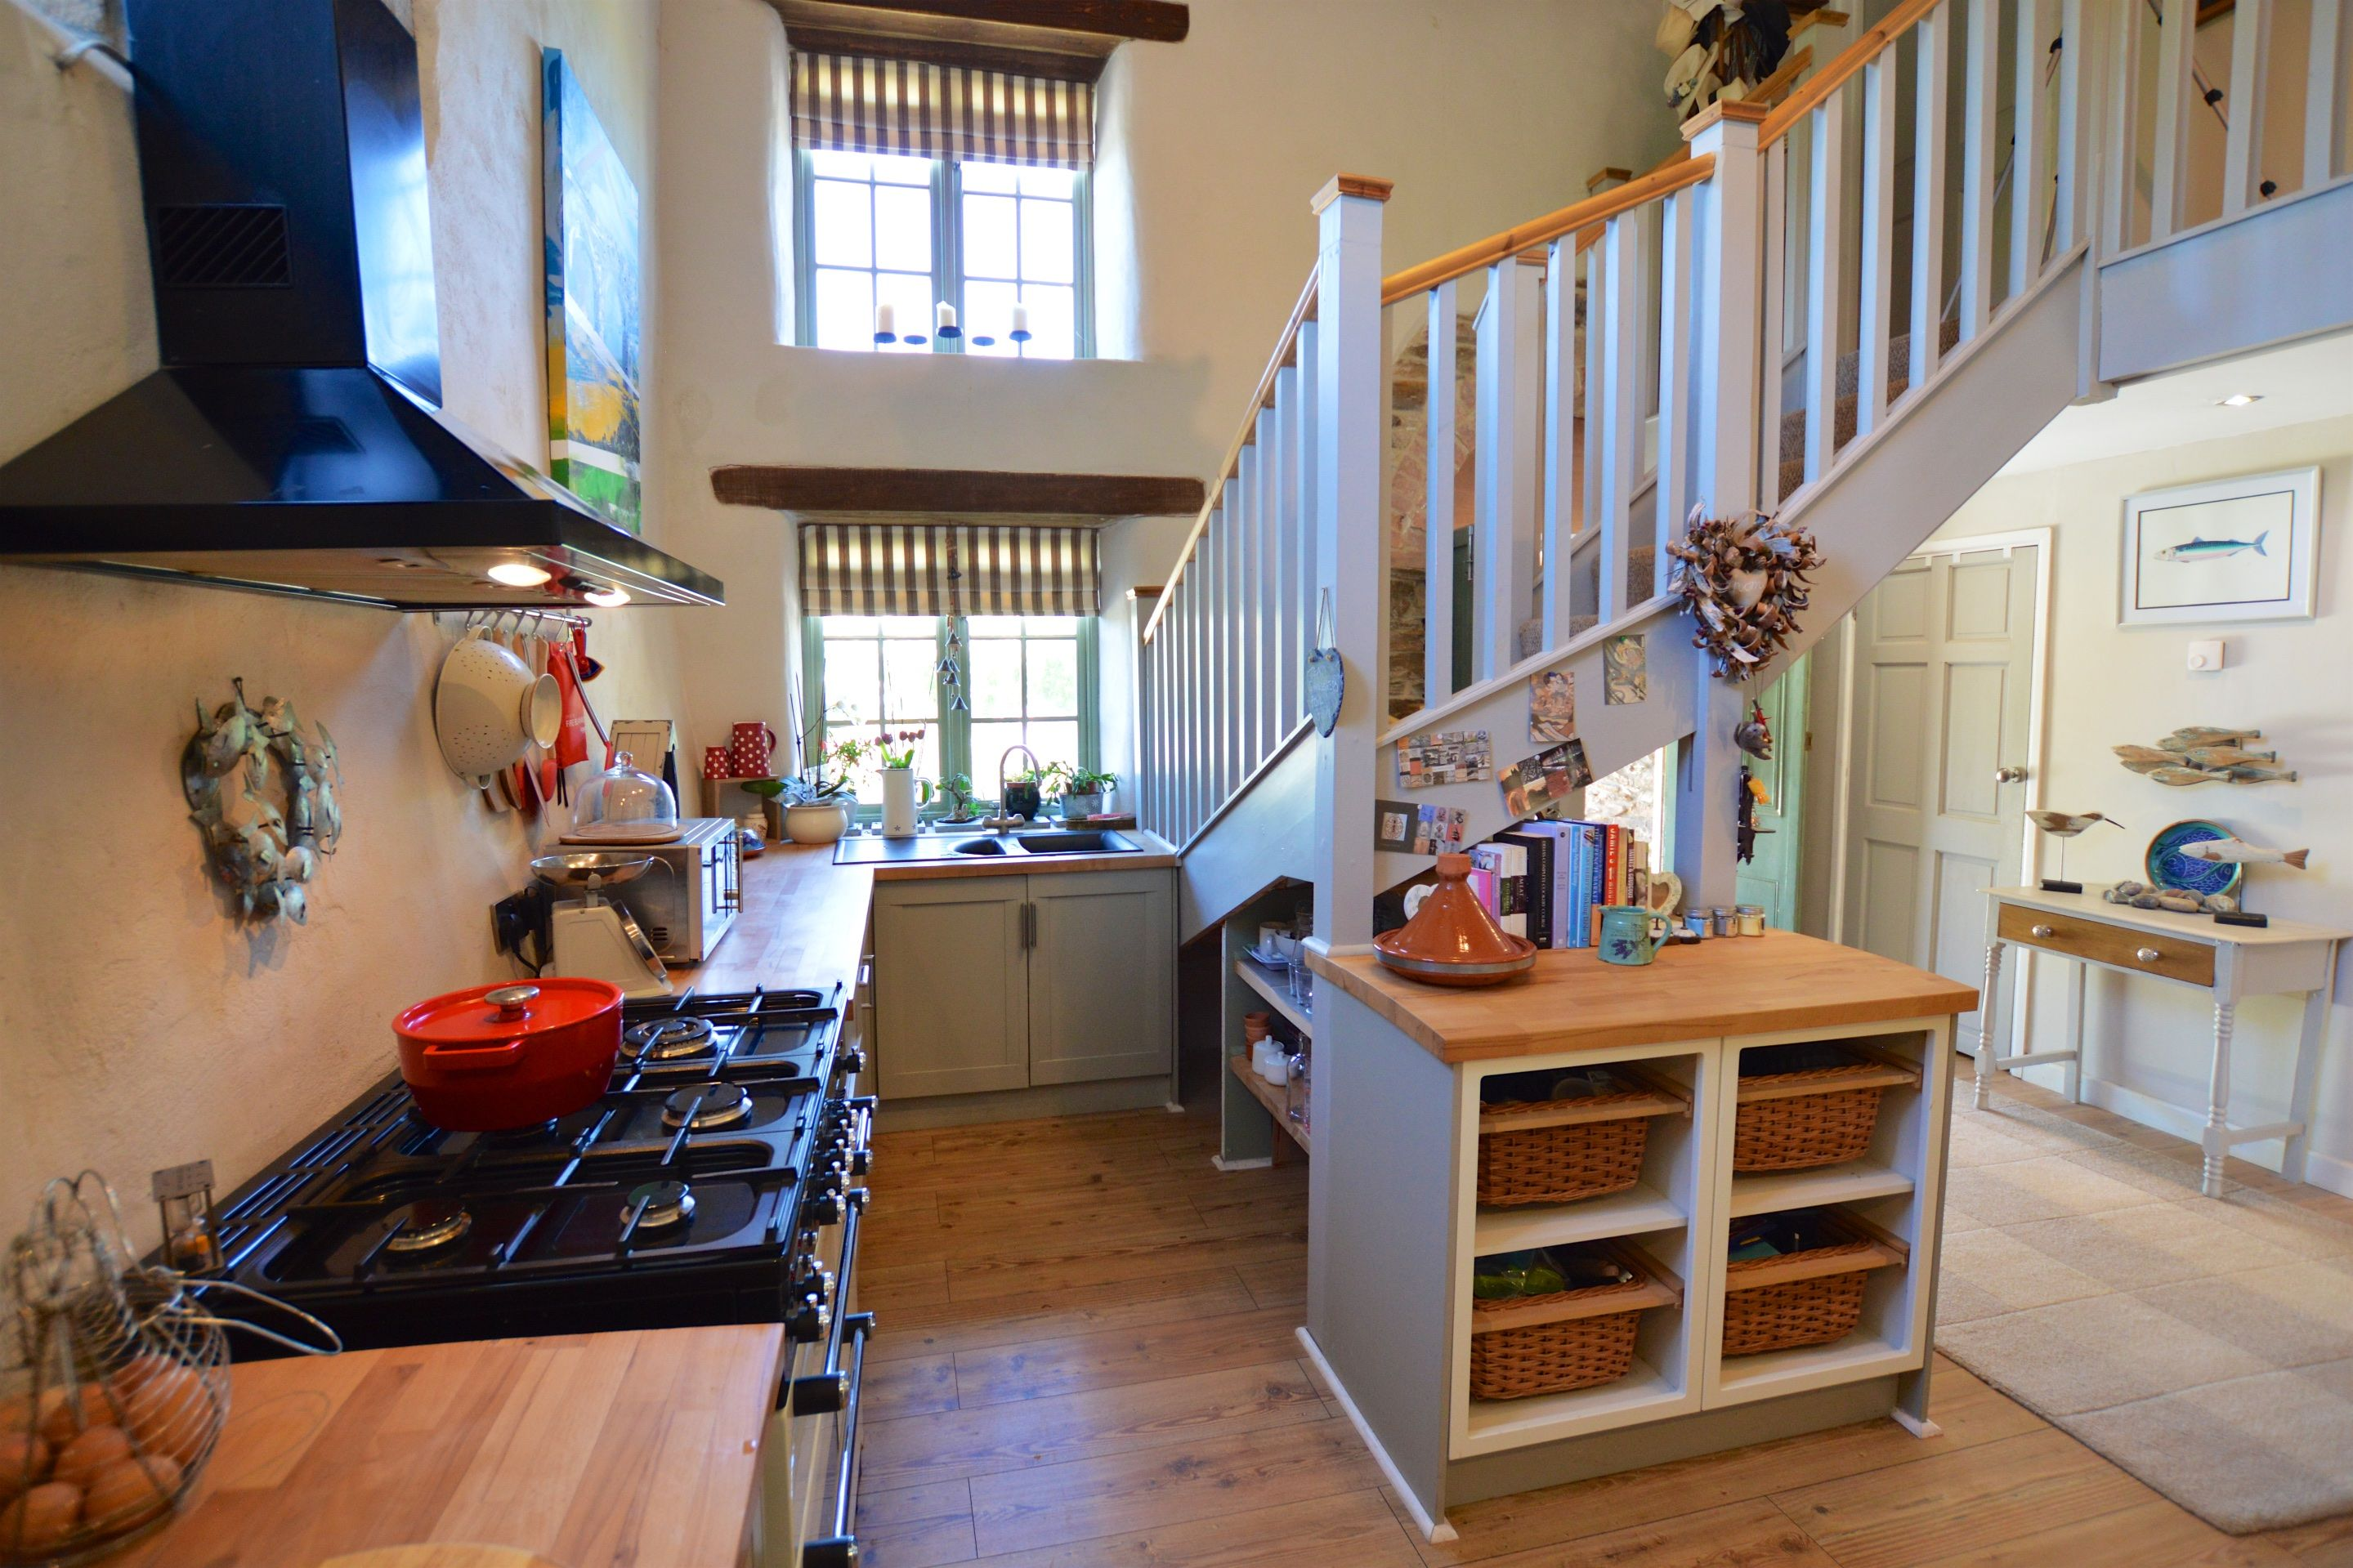 Holiday Cottages   Pure Cornwall The Old Chapel In Trevellas, St Agnes Is A Luxury  Holiday Rental, With A Stylish, Contemporary Interior, Retaining Many ...